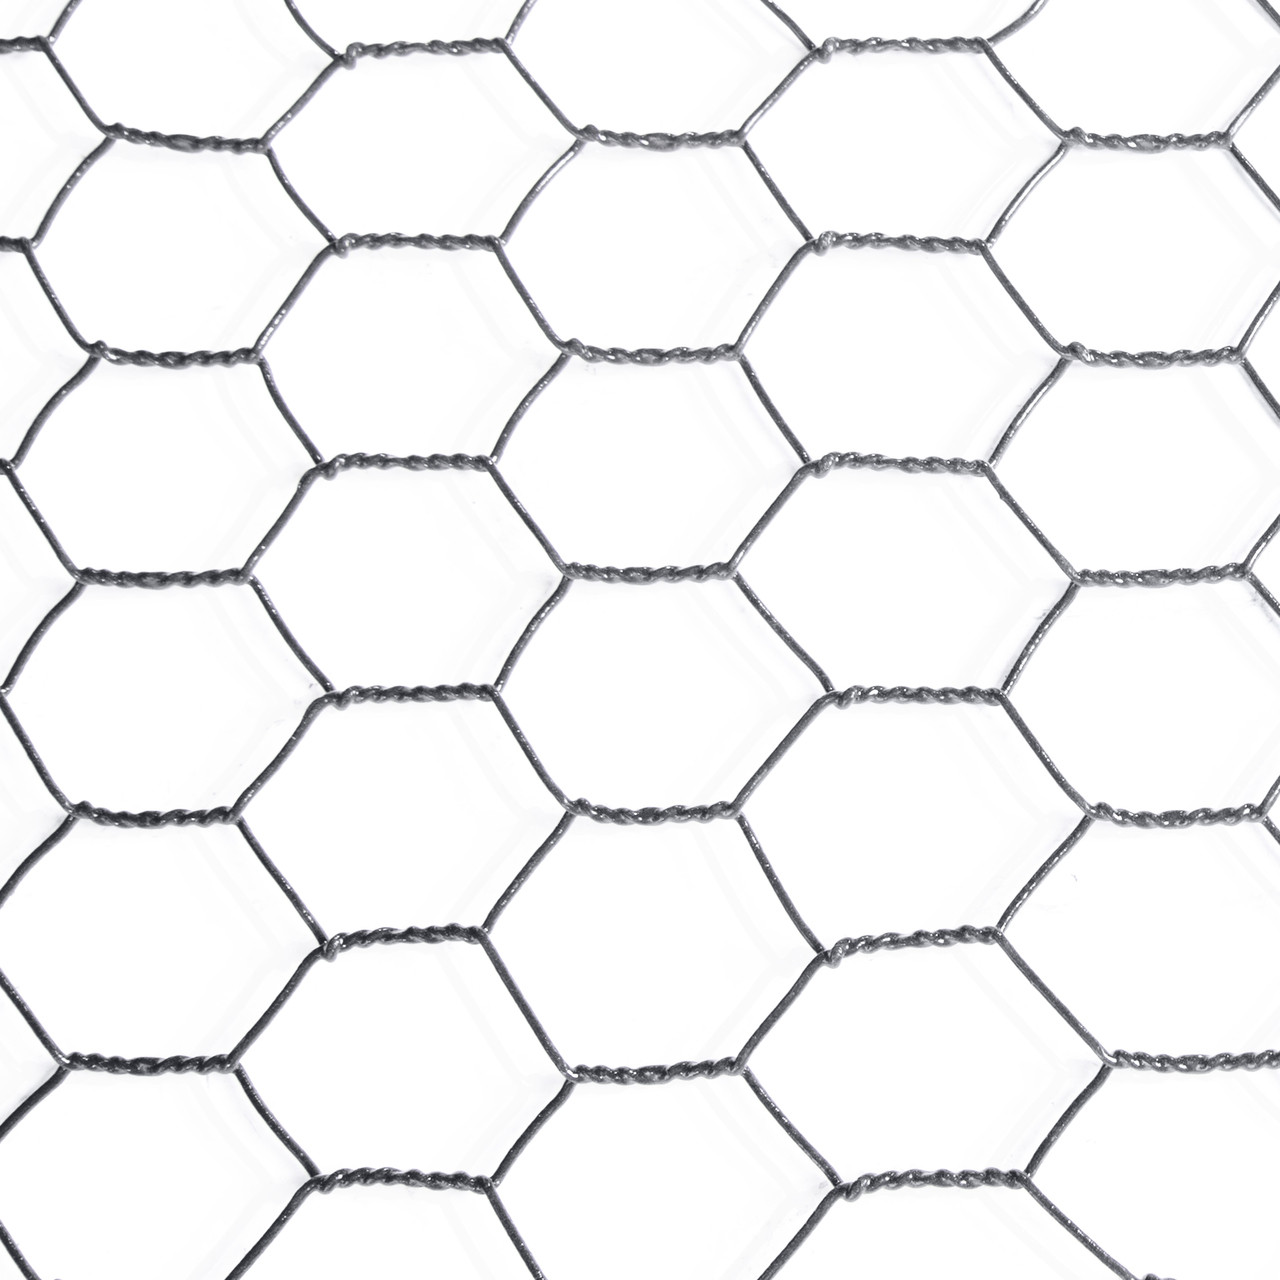 16 Gauge Black Vinyl Coated Hex / Poultry Netting Mesh 1.5\